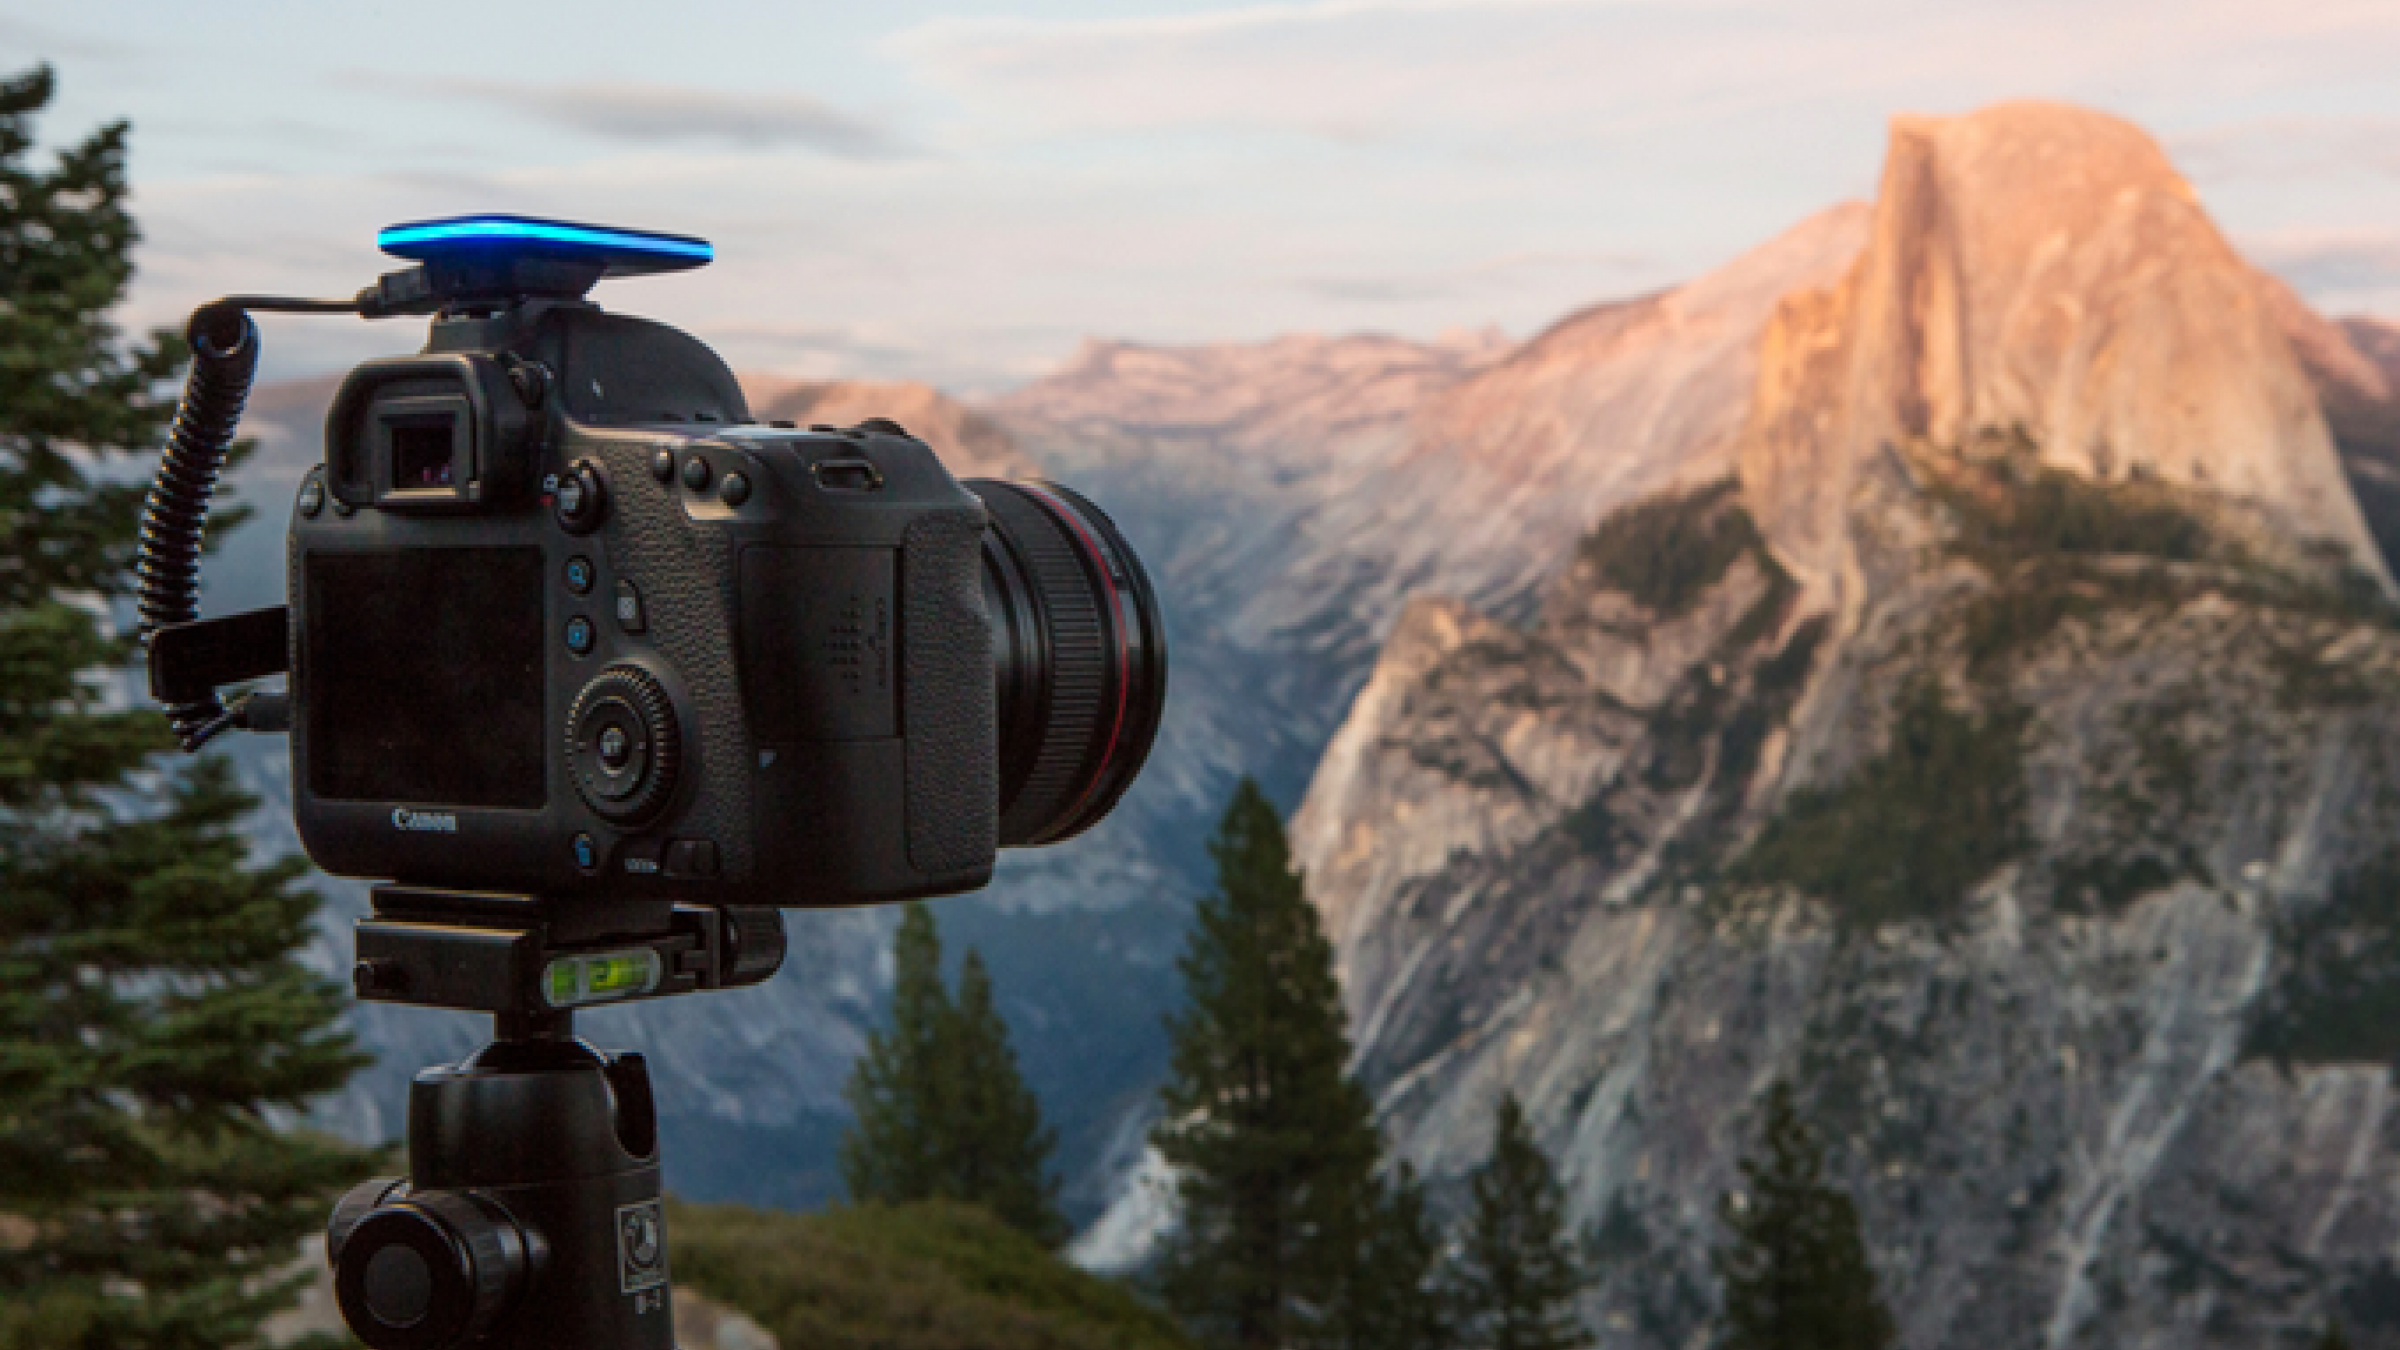 This Powerful Little Gadget Gives You Full Wireless Control over Your DSLR for Just $74